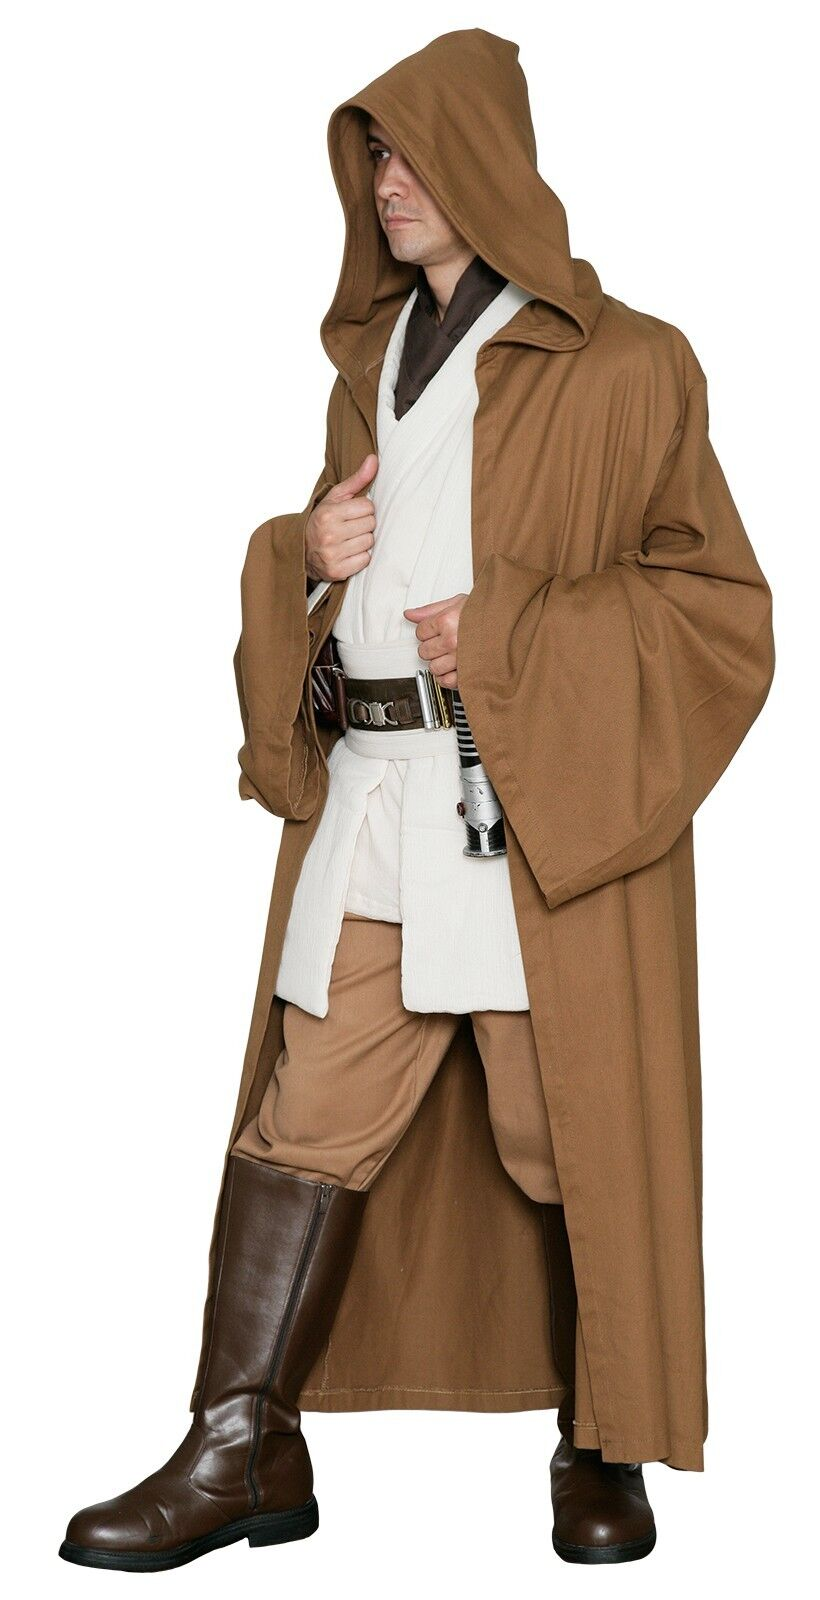 Star Wars Jedi Robe Only OBI Light Brown Quality Replica ...